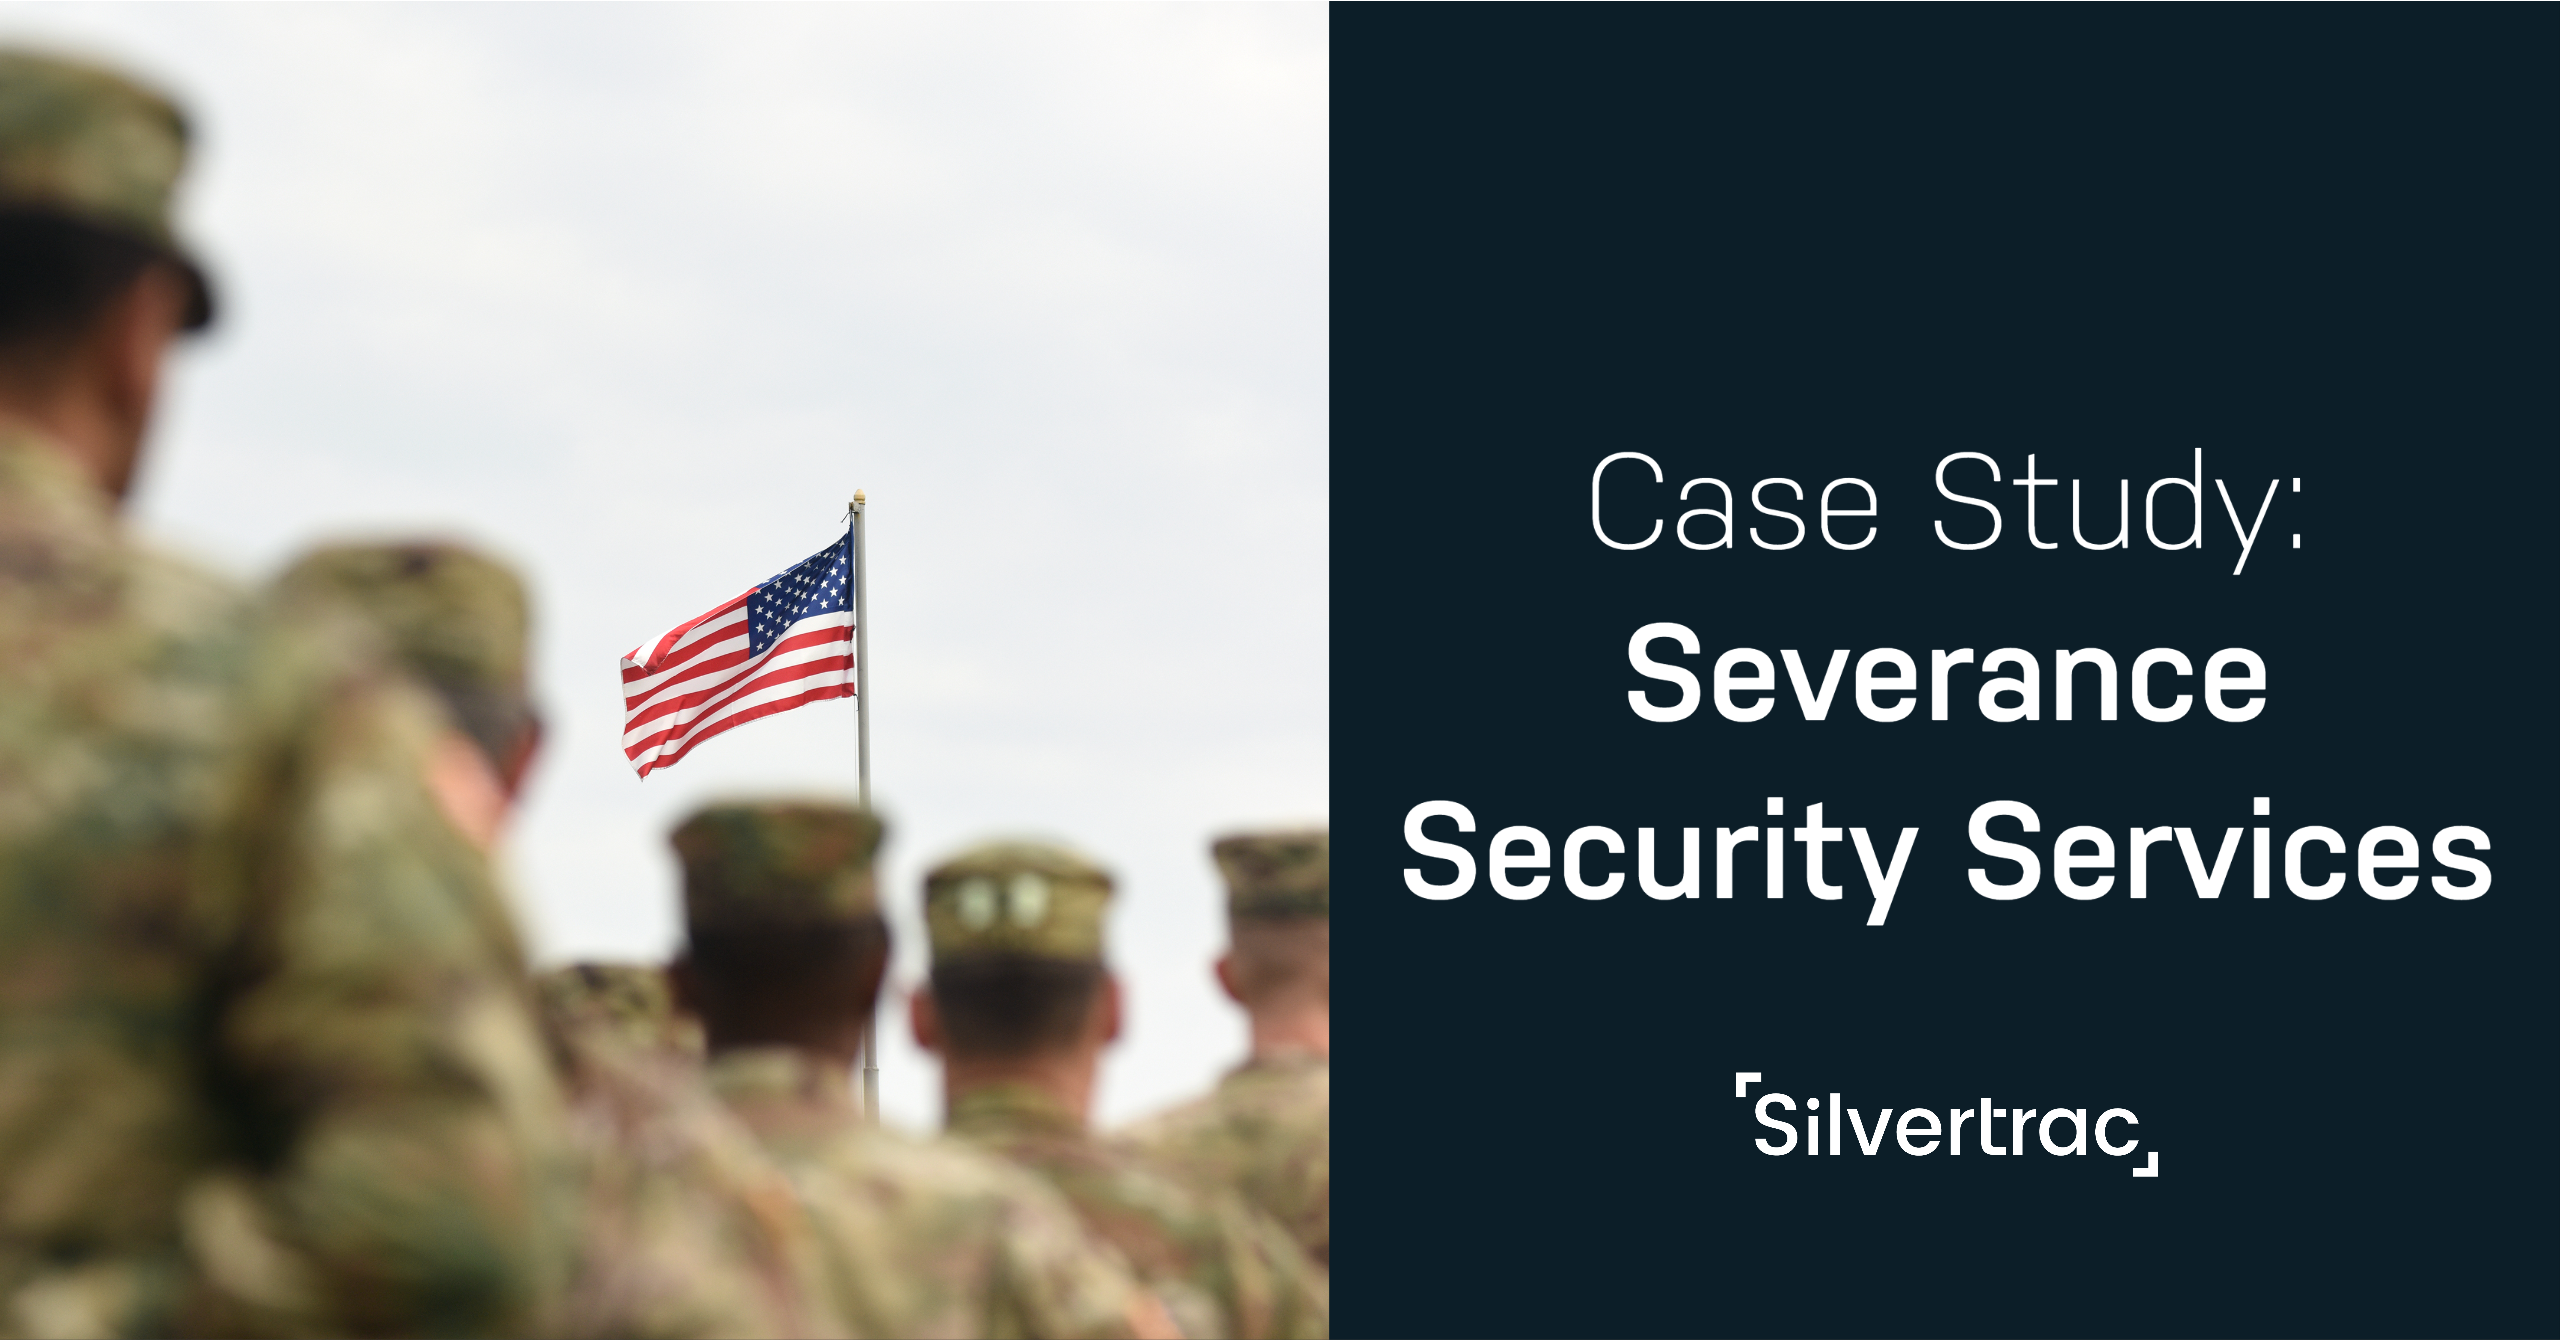 Severance Security Services Case Study